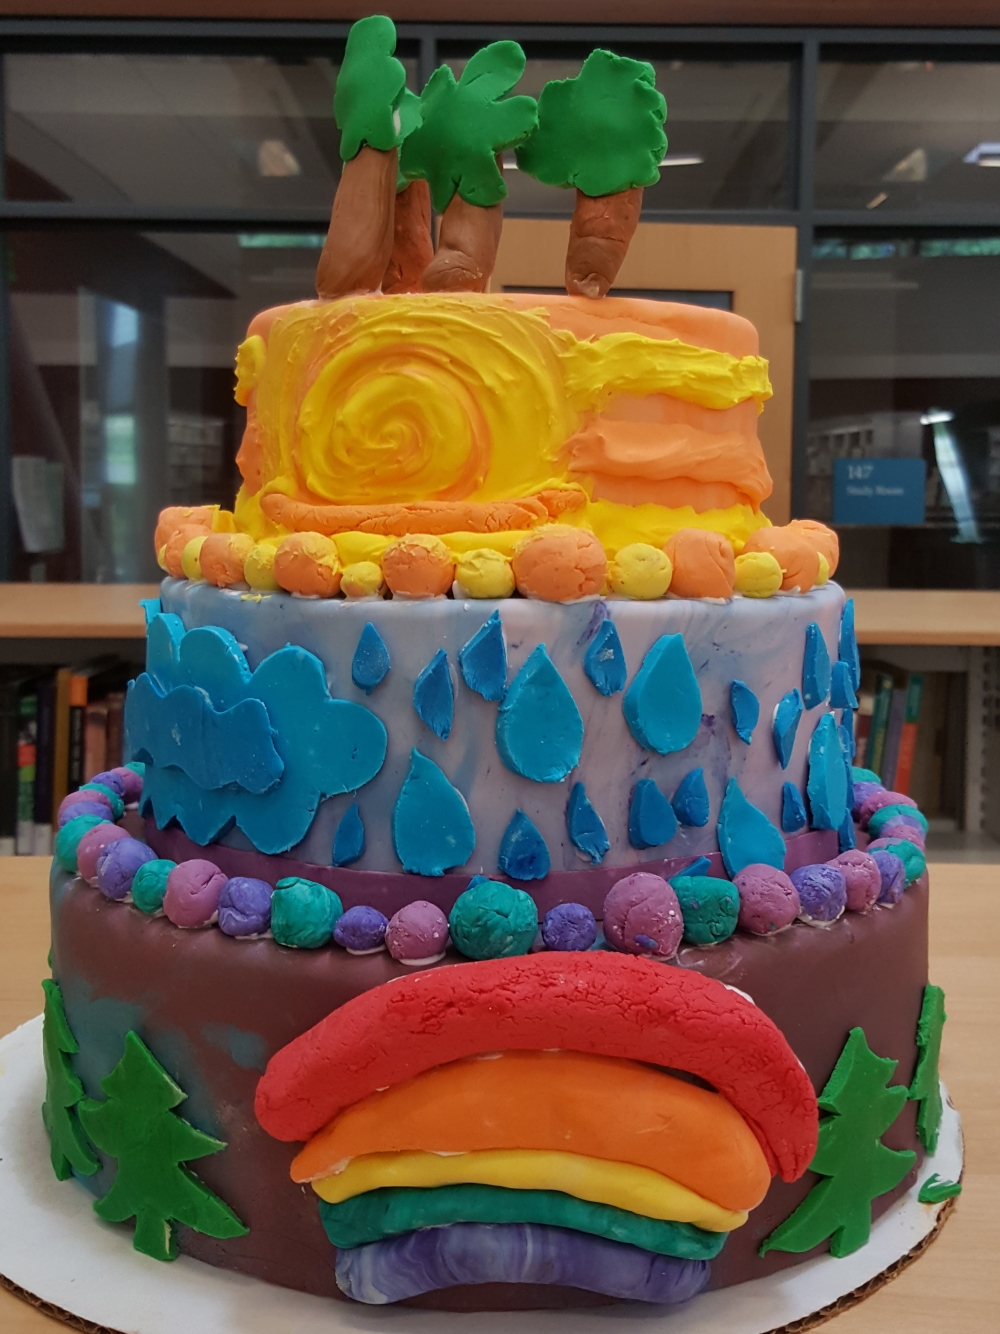 2019 Cakes Weather - front view